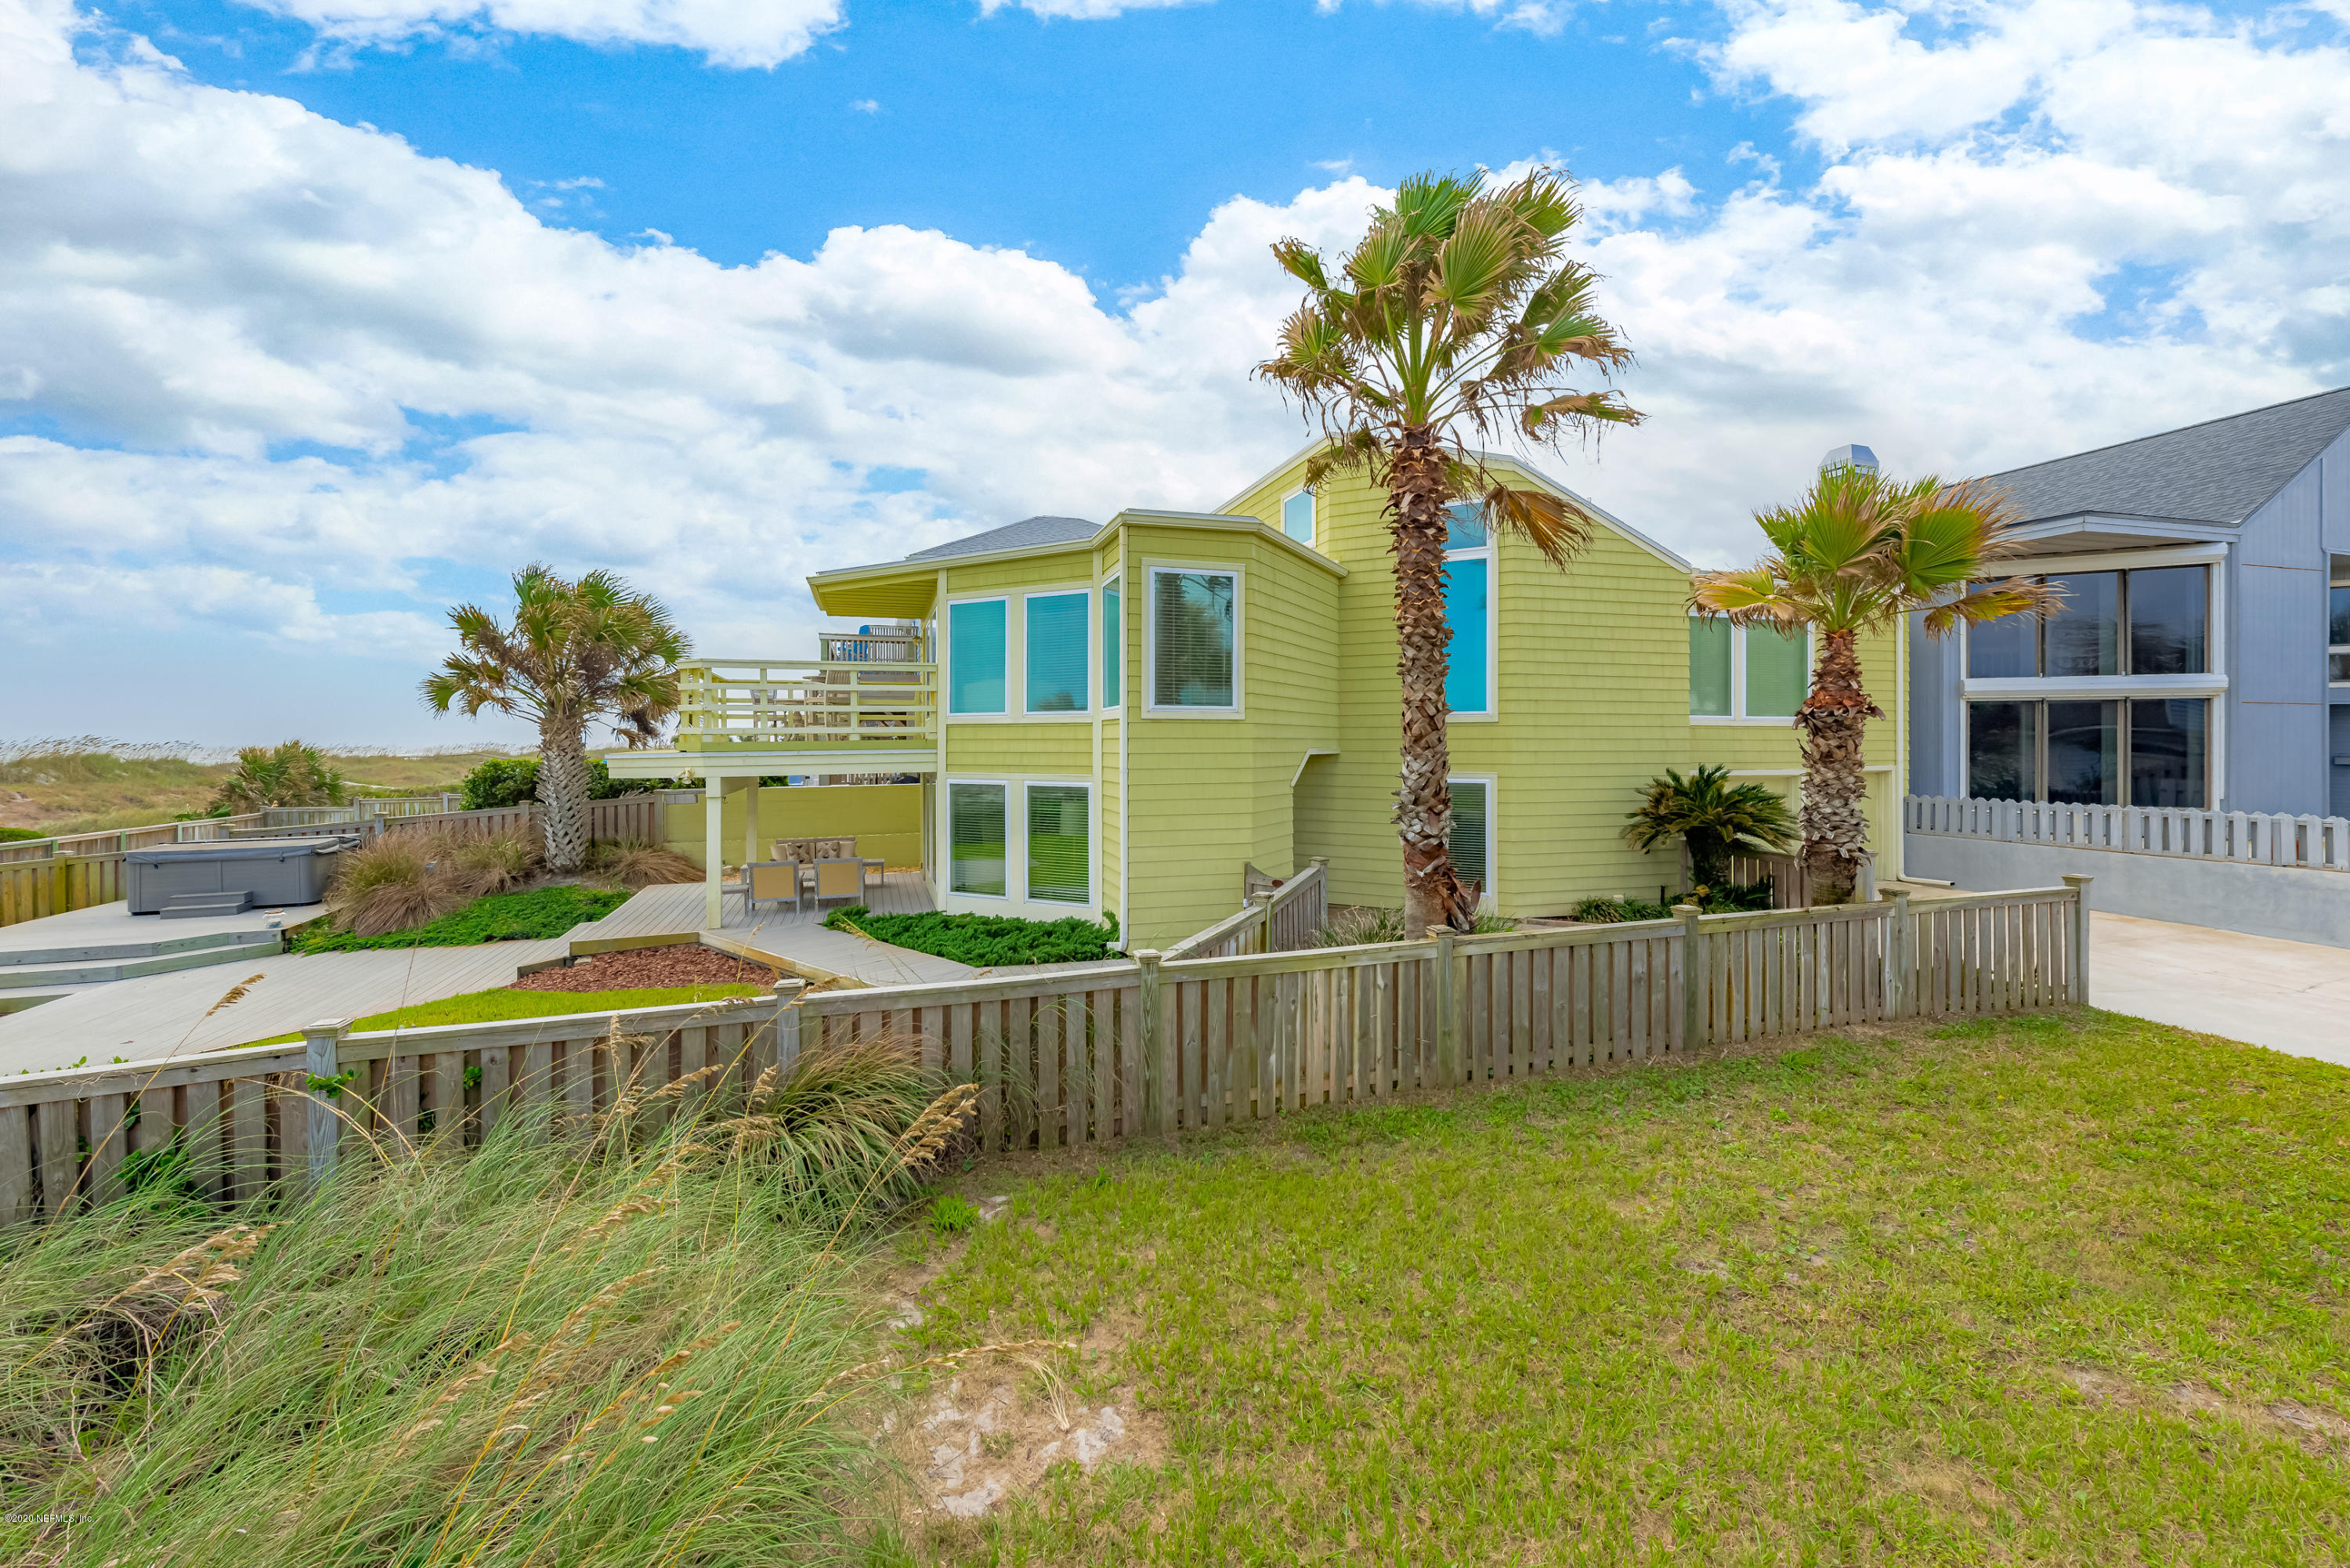 Property for sale at 93 ORANGE ST, Neptune Beach,  Florida 32266